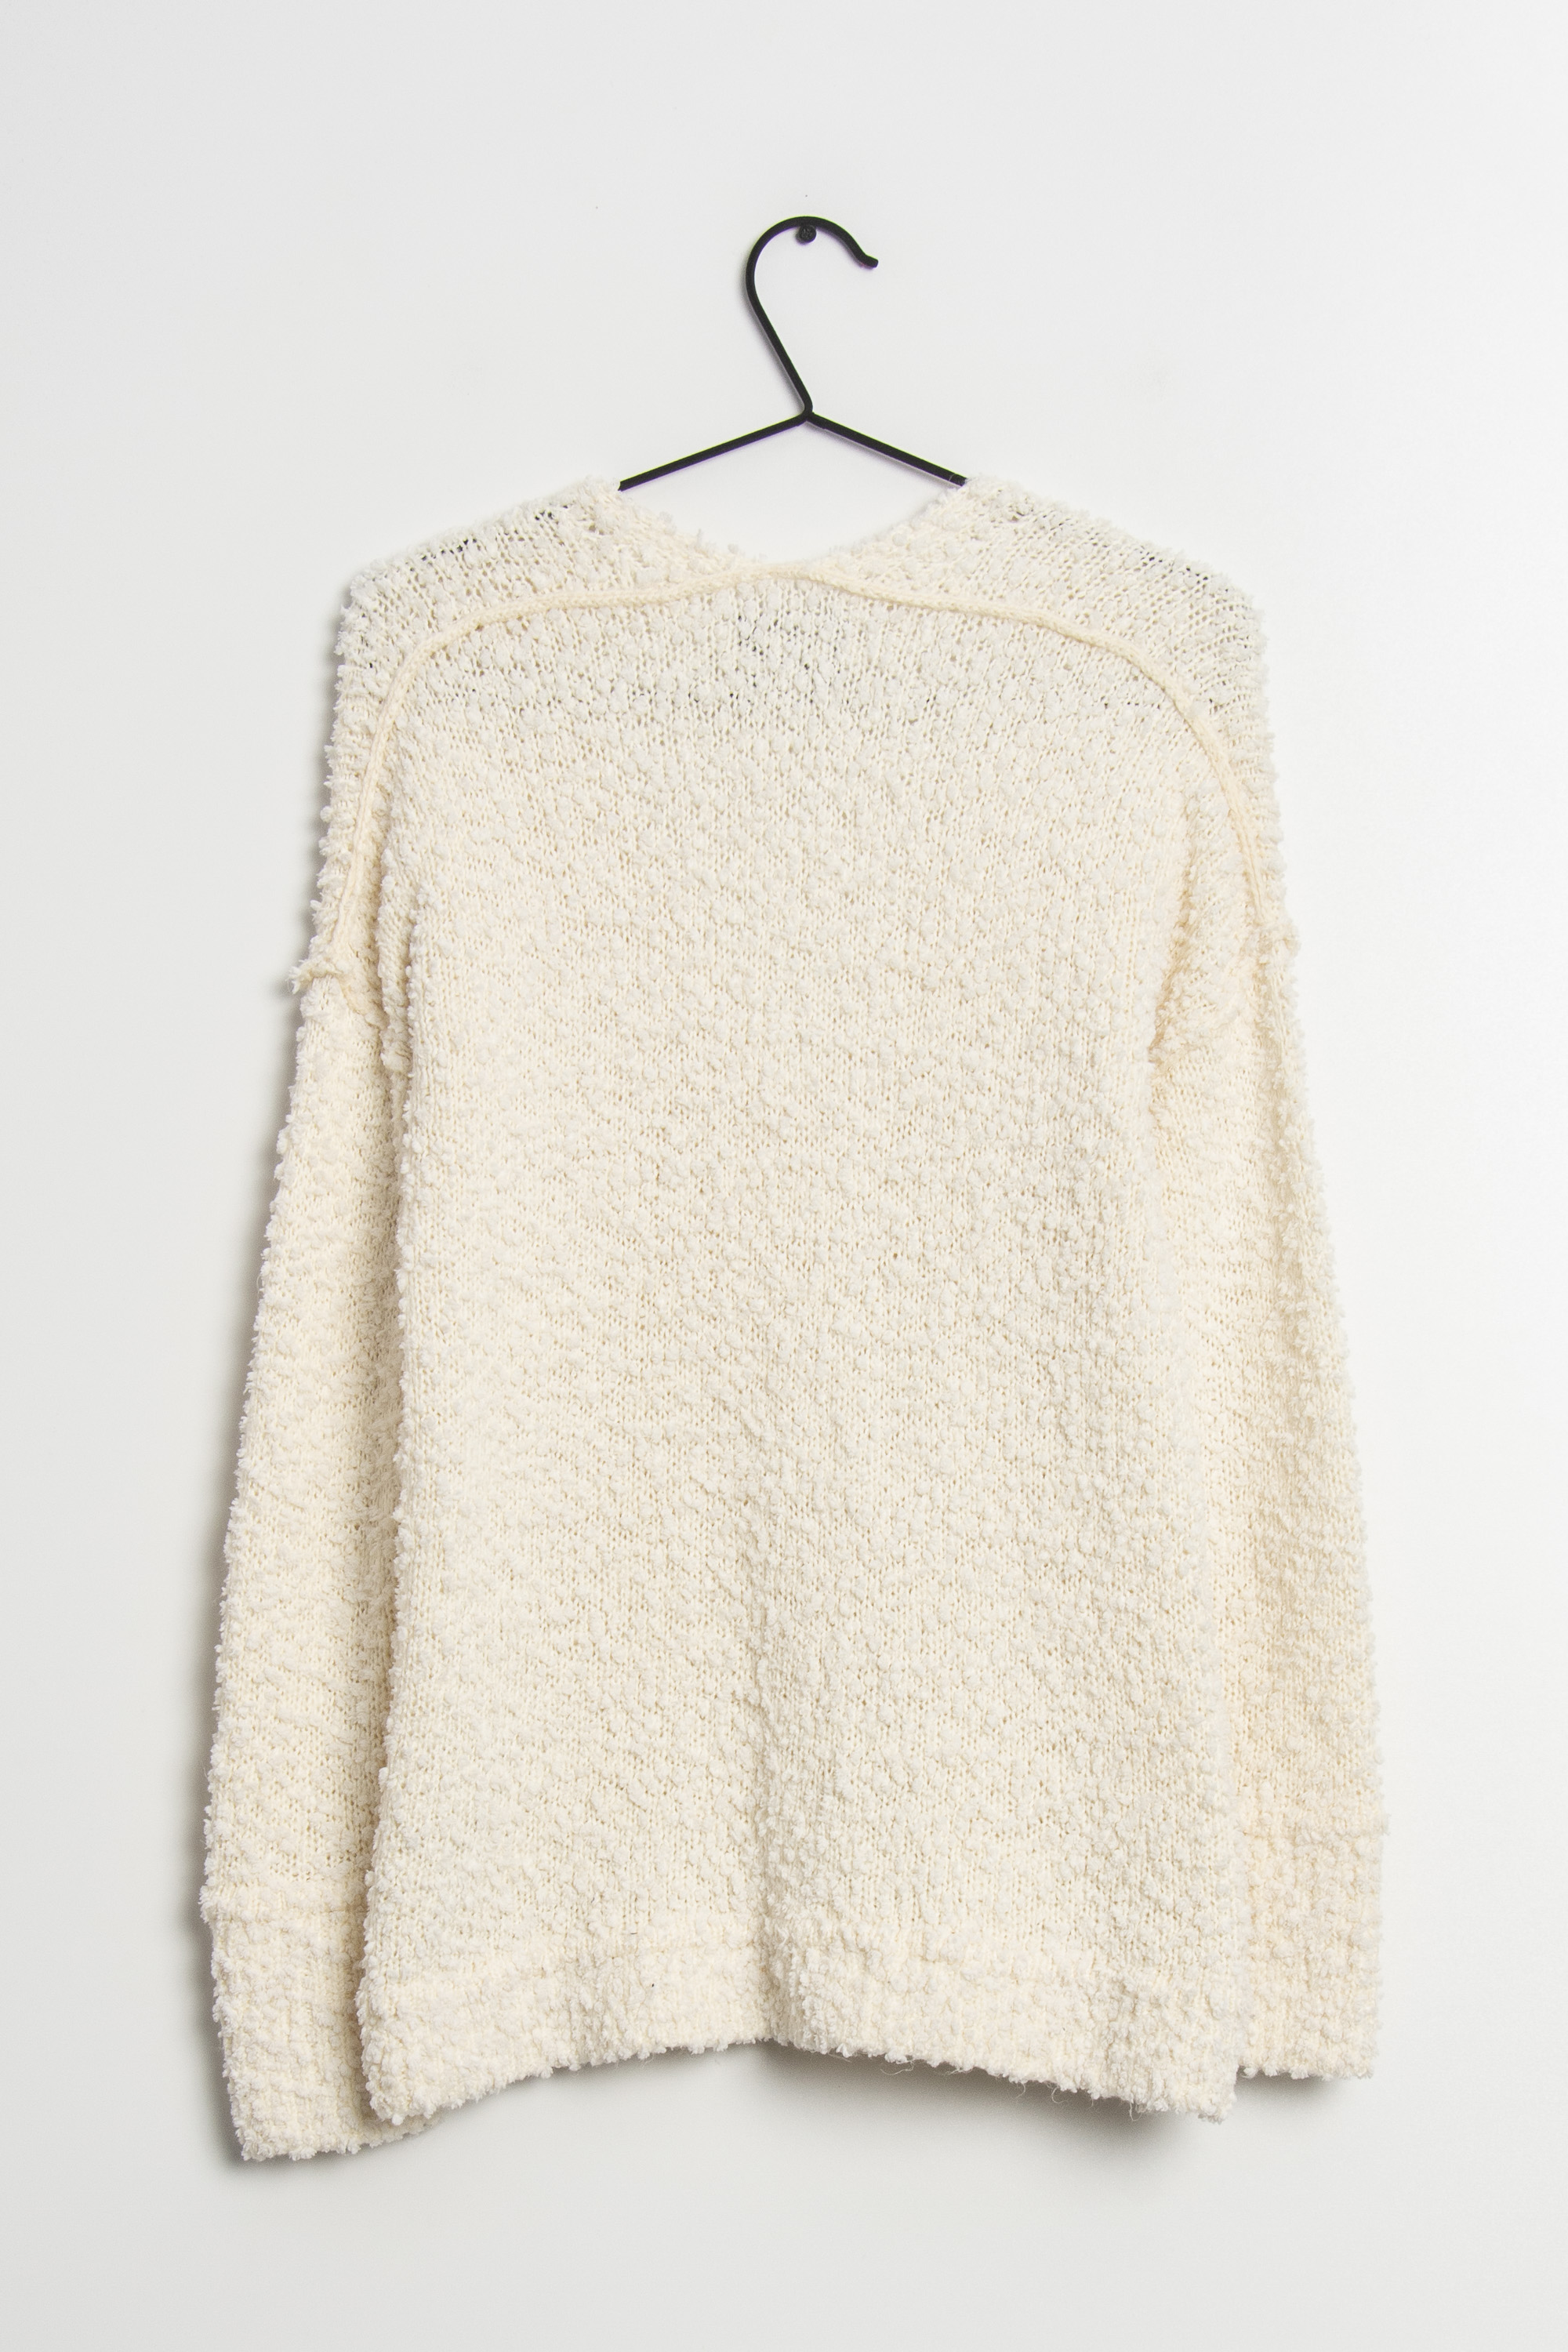 Abercrombie & Fitch Strickpullover Beige Gr.S